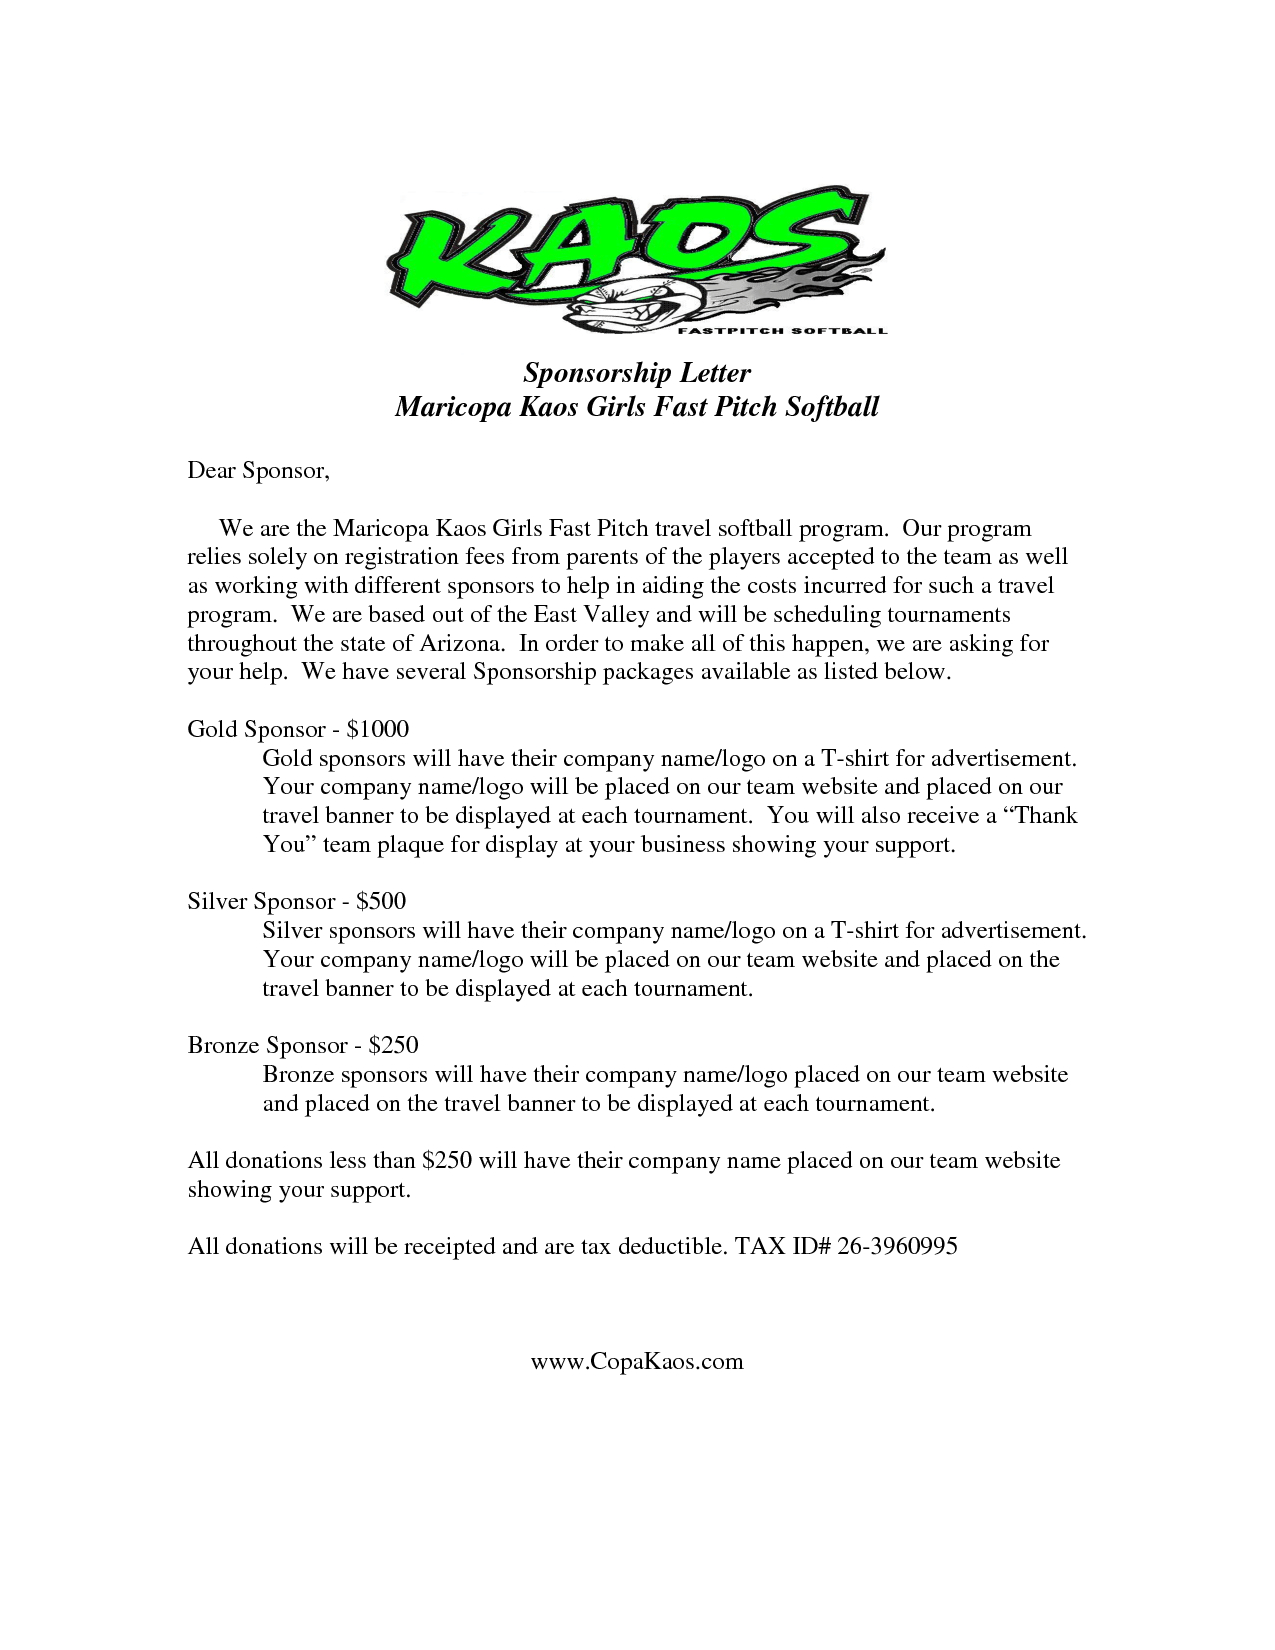 Mission Fundraising Letter Template - Image Result for Sample Sponsor Request Letter Donation